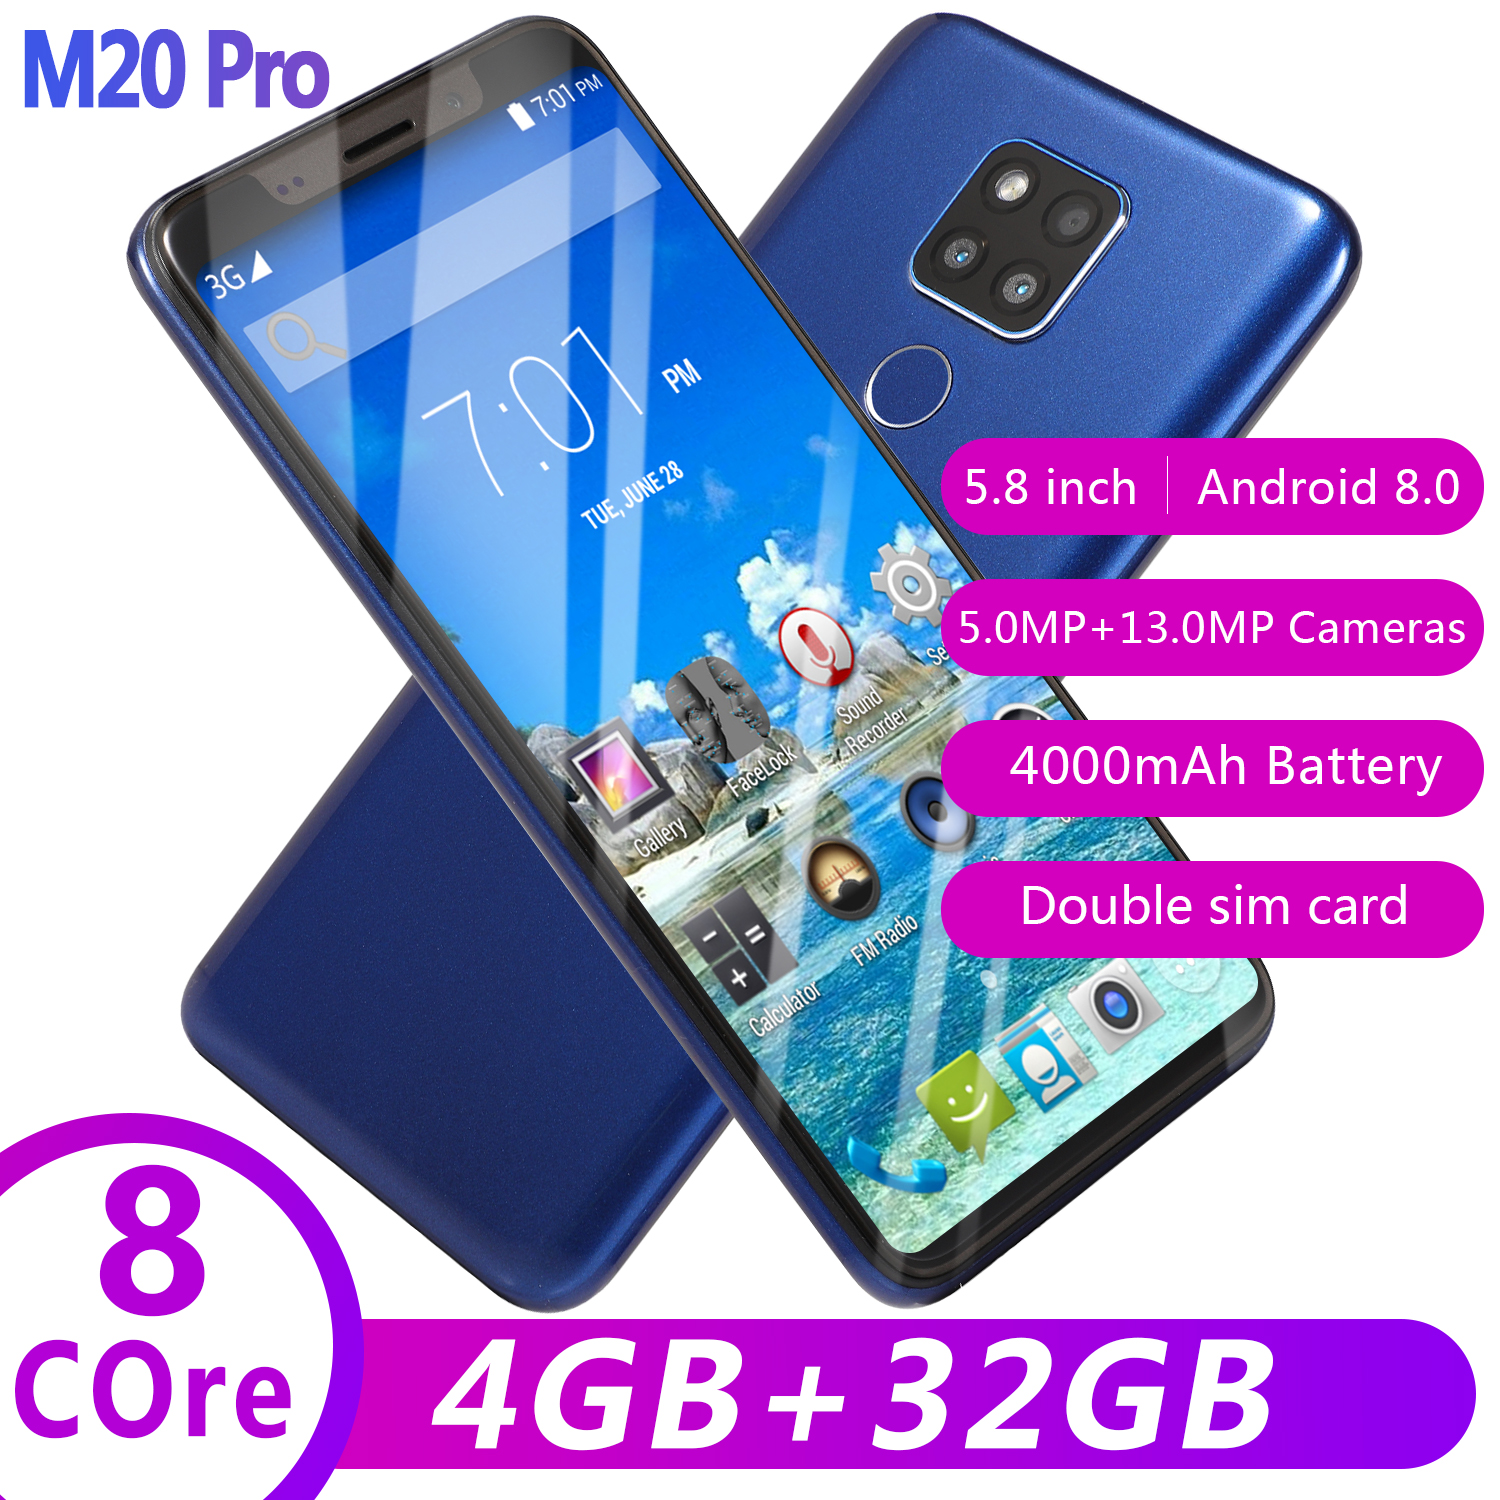 wholesale cheap smart phone android 5.8 inch Quad core Gradient body Factory Outlet oem low price china mobile phone